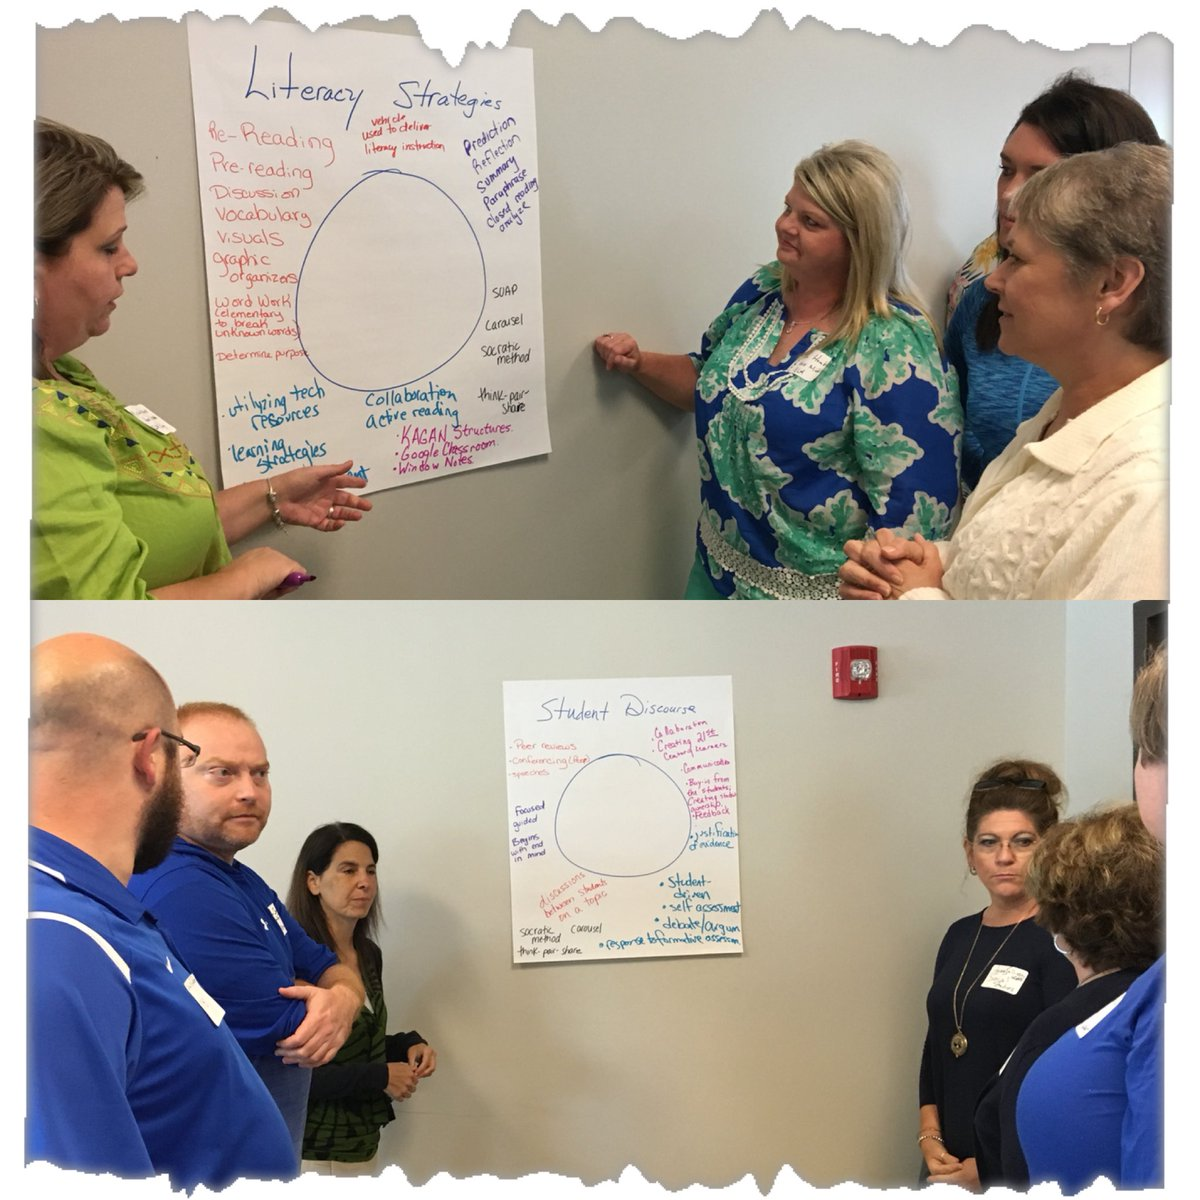 Participating in Carousel Strategy to demonstrate vocabulary understanding/knowledge #LDC #readky<br>http://pic.twitter.com/X1K390BDuq